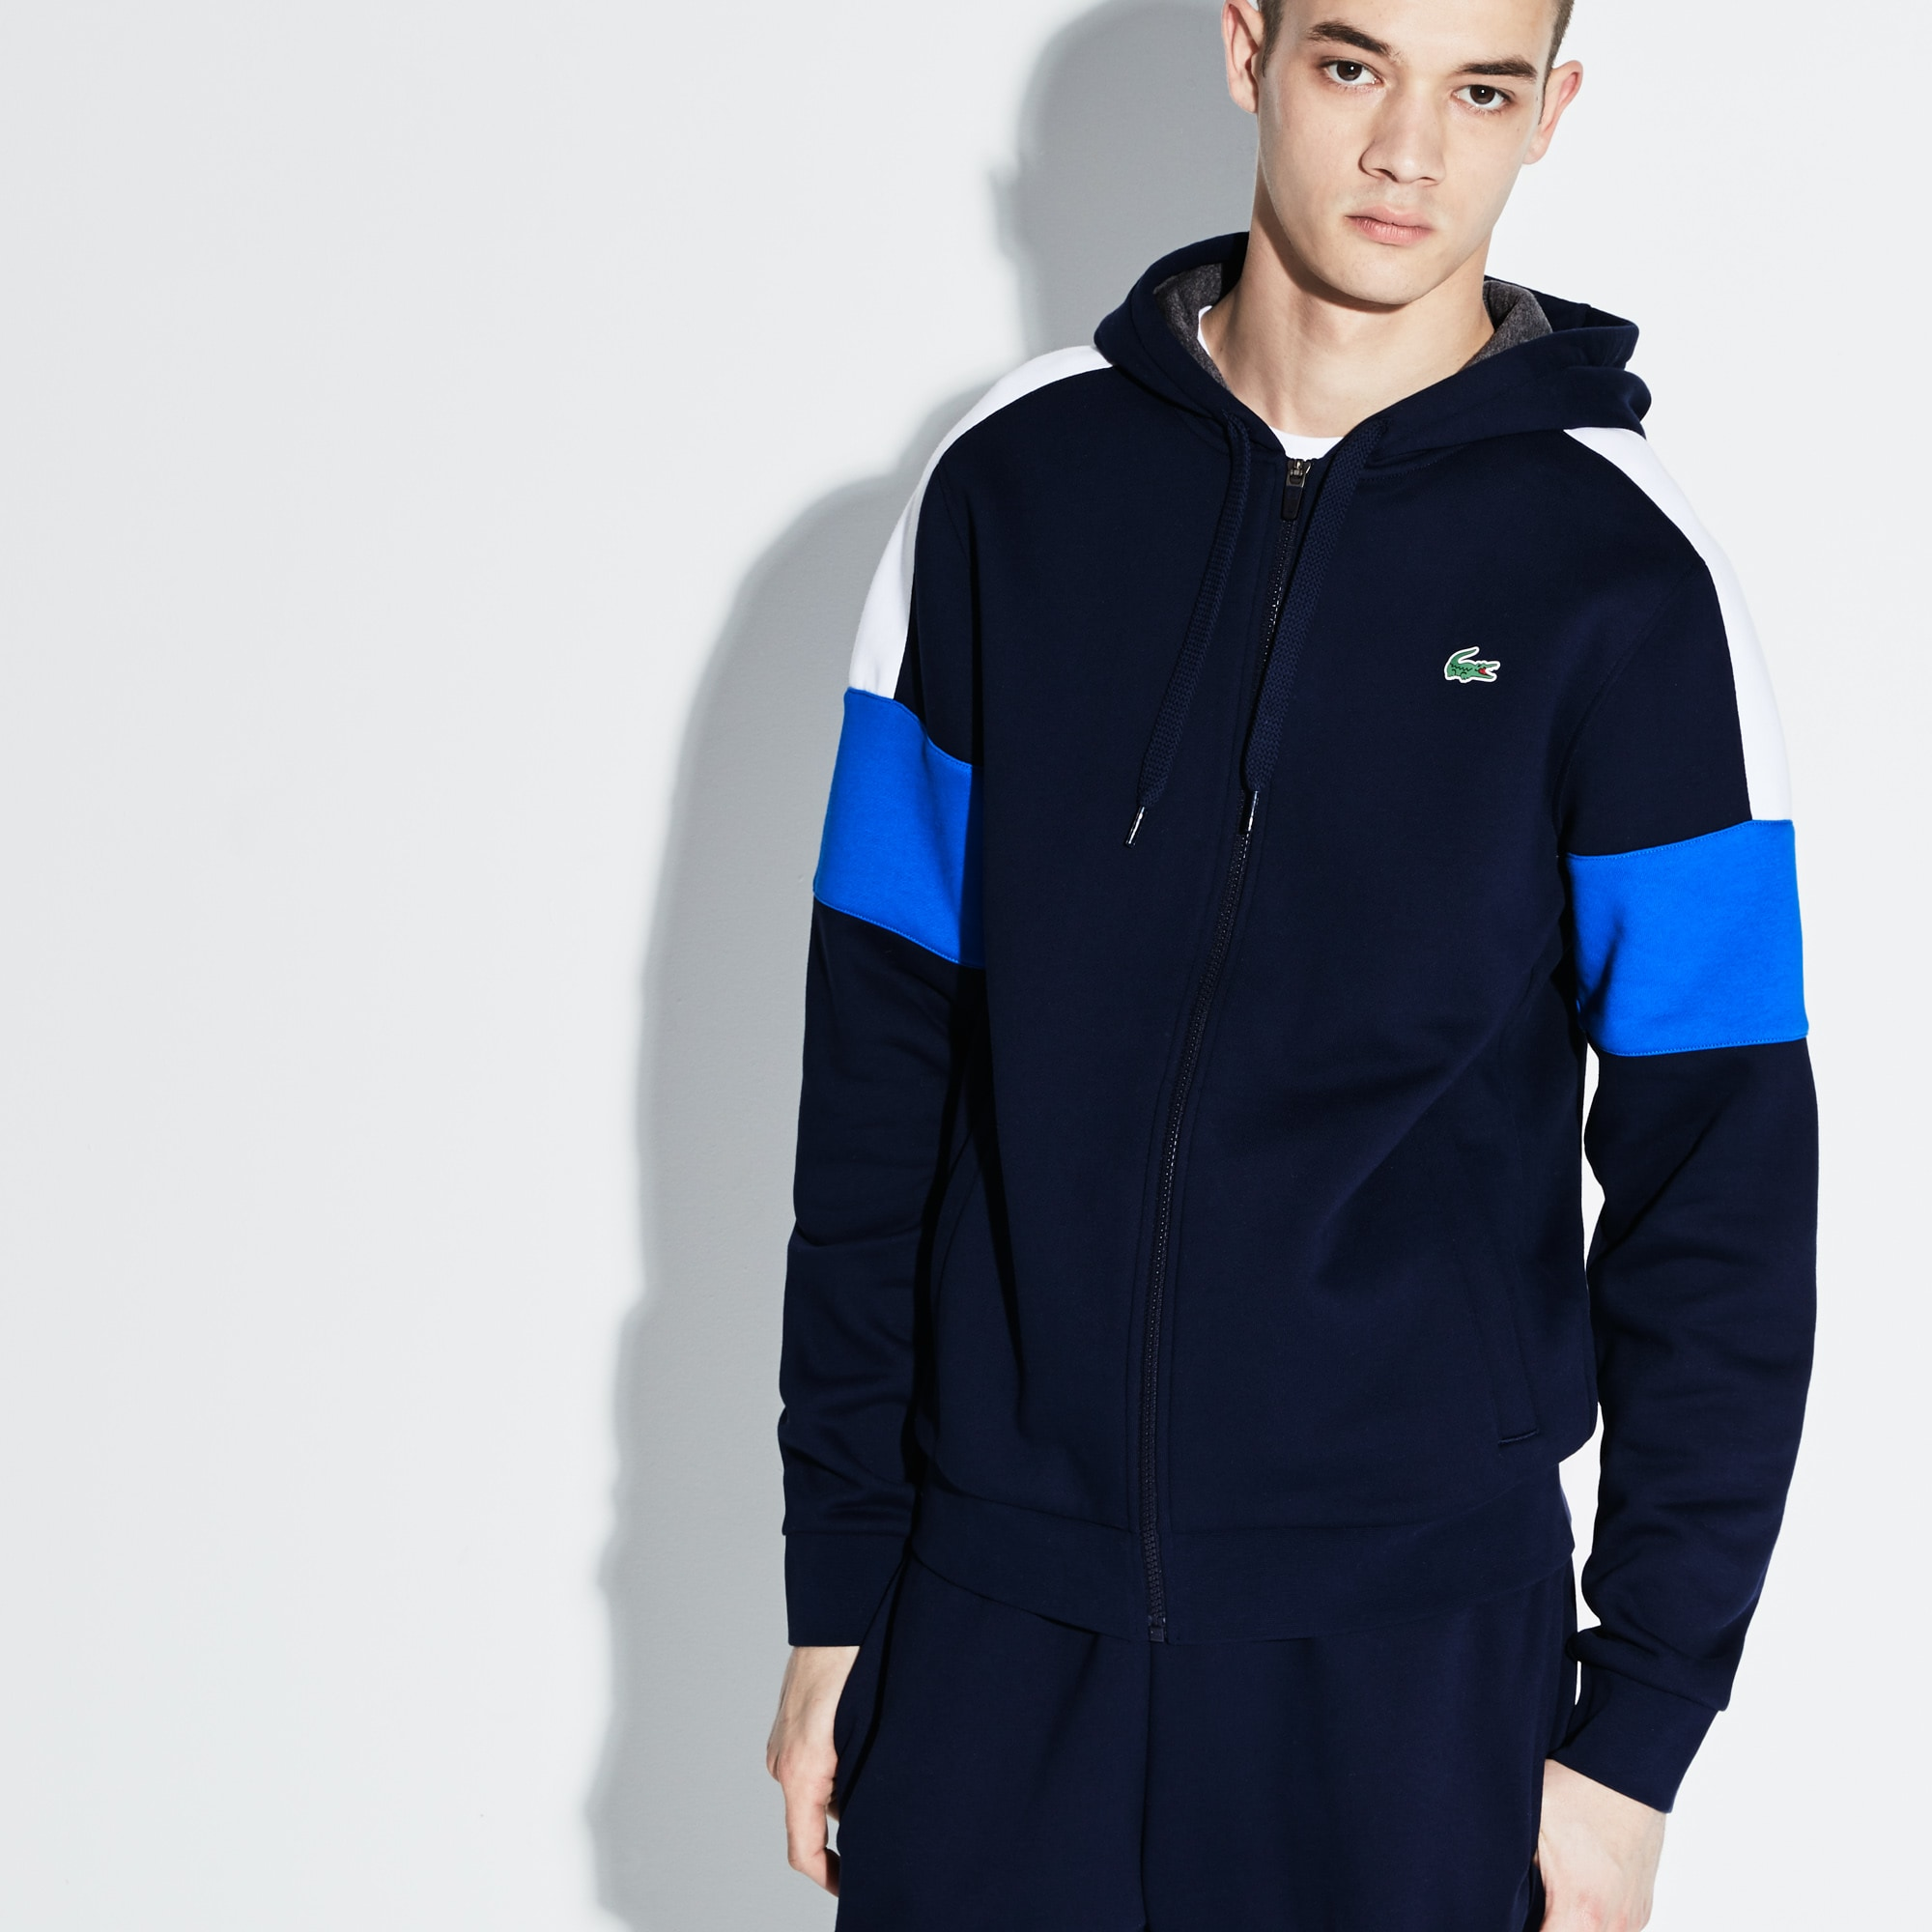 Men's Lacoste SPORT Colorblock Fleece Zippered Tennis Sweatshirt